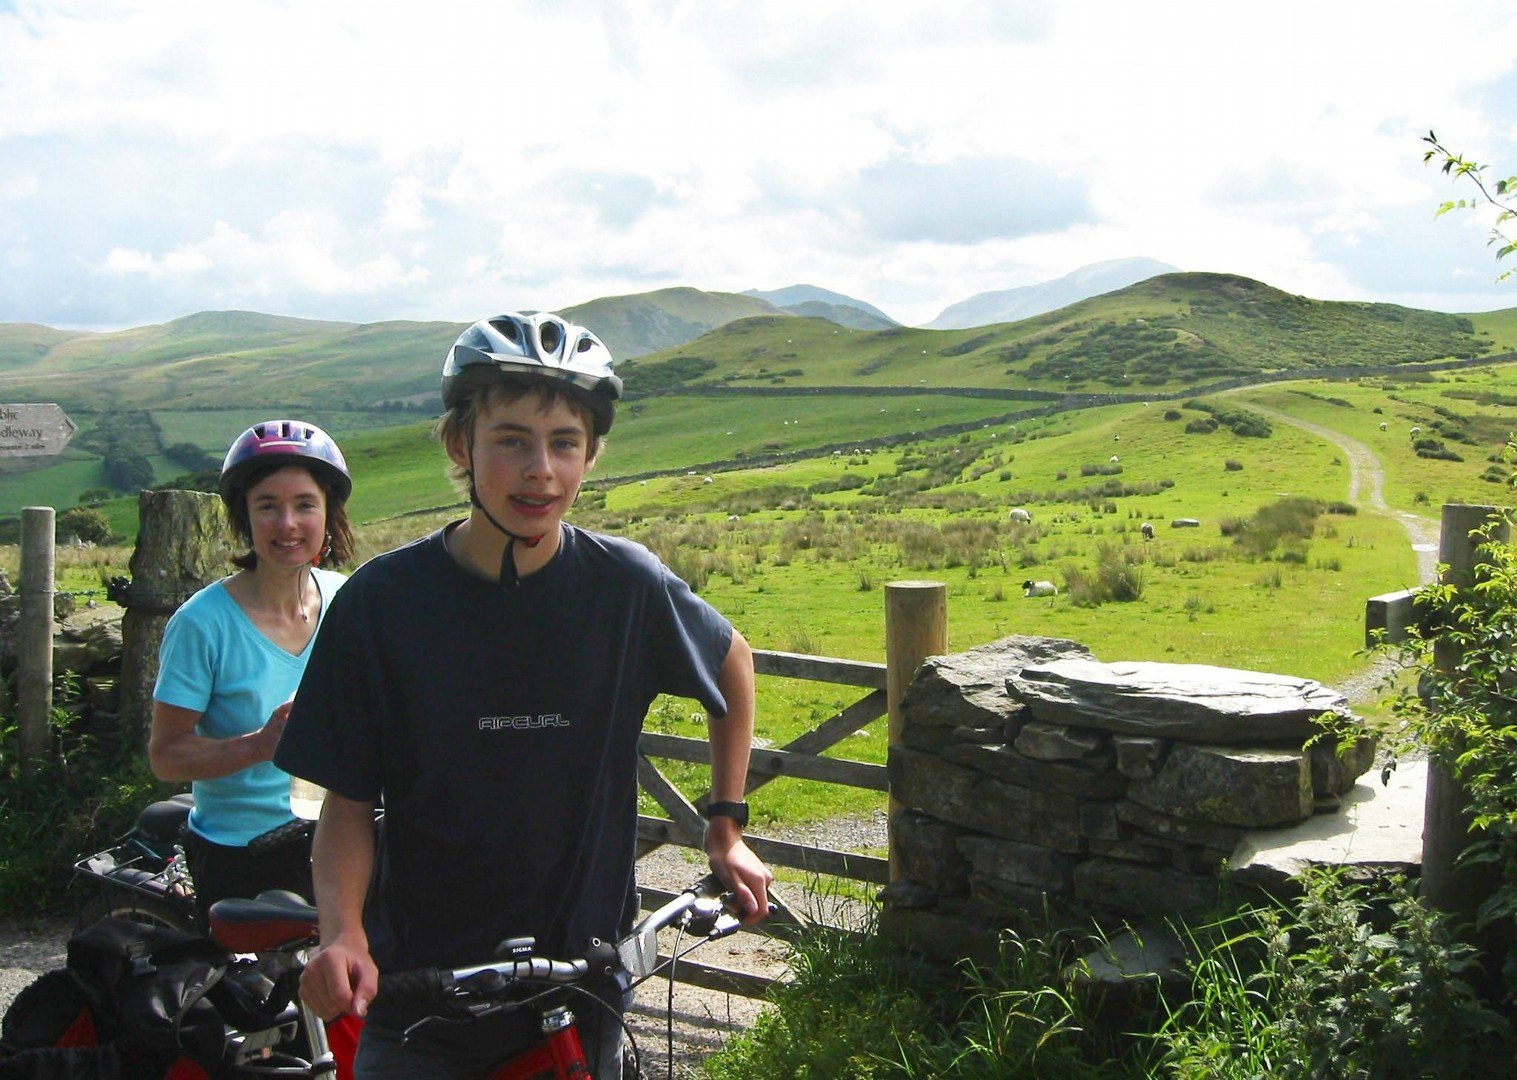 family-guided-cycling-holiday-uk-lake-district-bike-skills.jpg - UK - Lake District - Bike Skills - Family Cycling